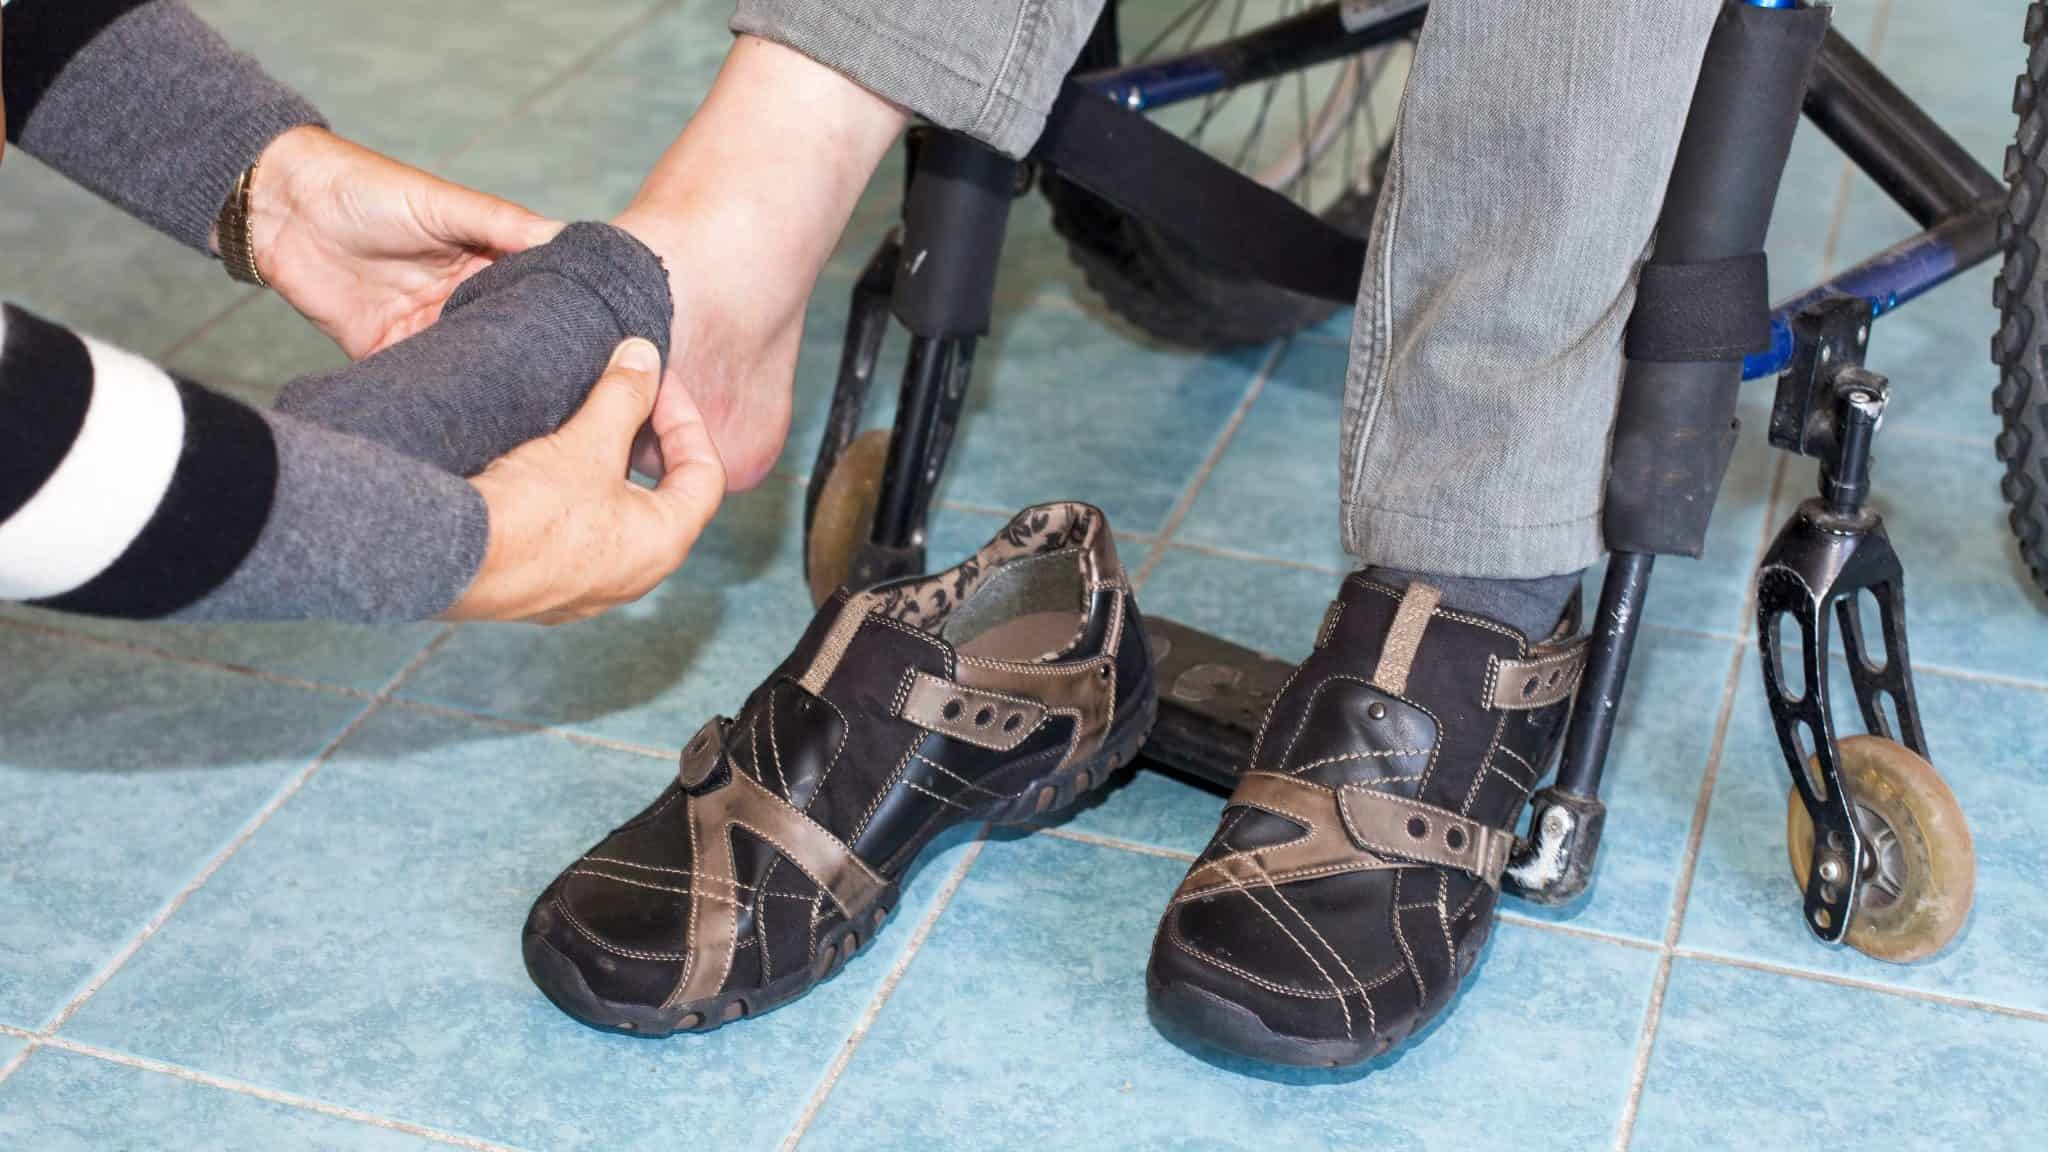 Photo showing a person kneeling down, assisting a person sitting in a wheelchair with putting on a sock.